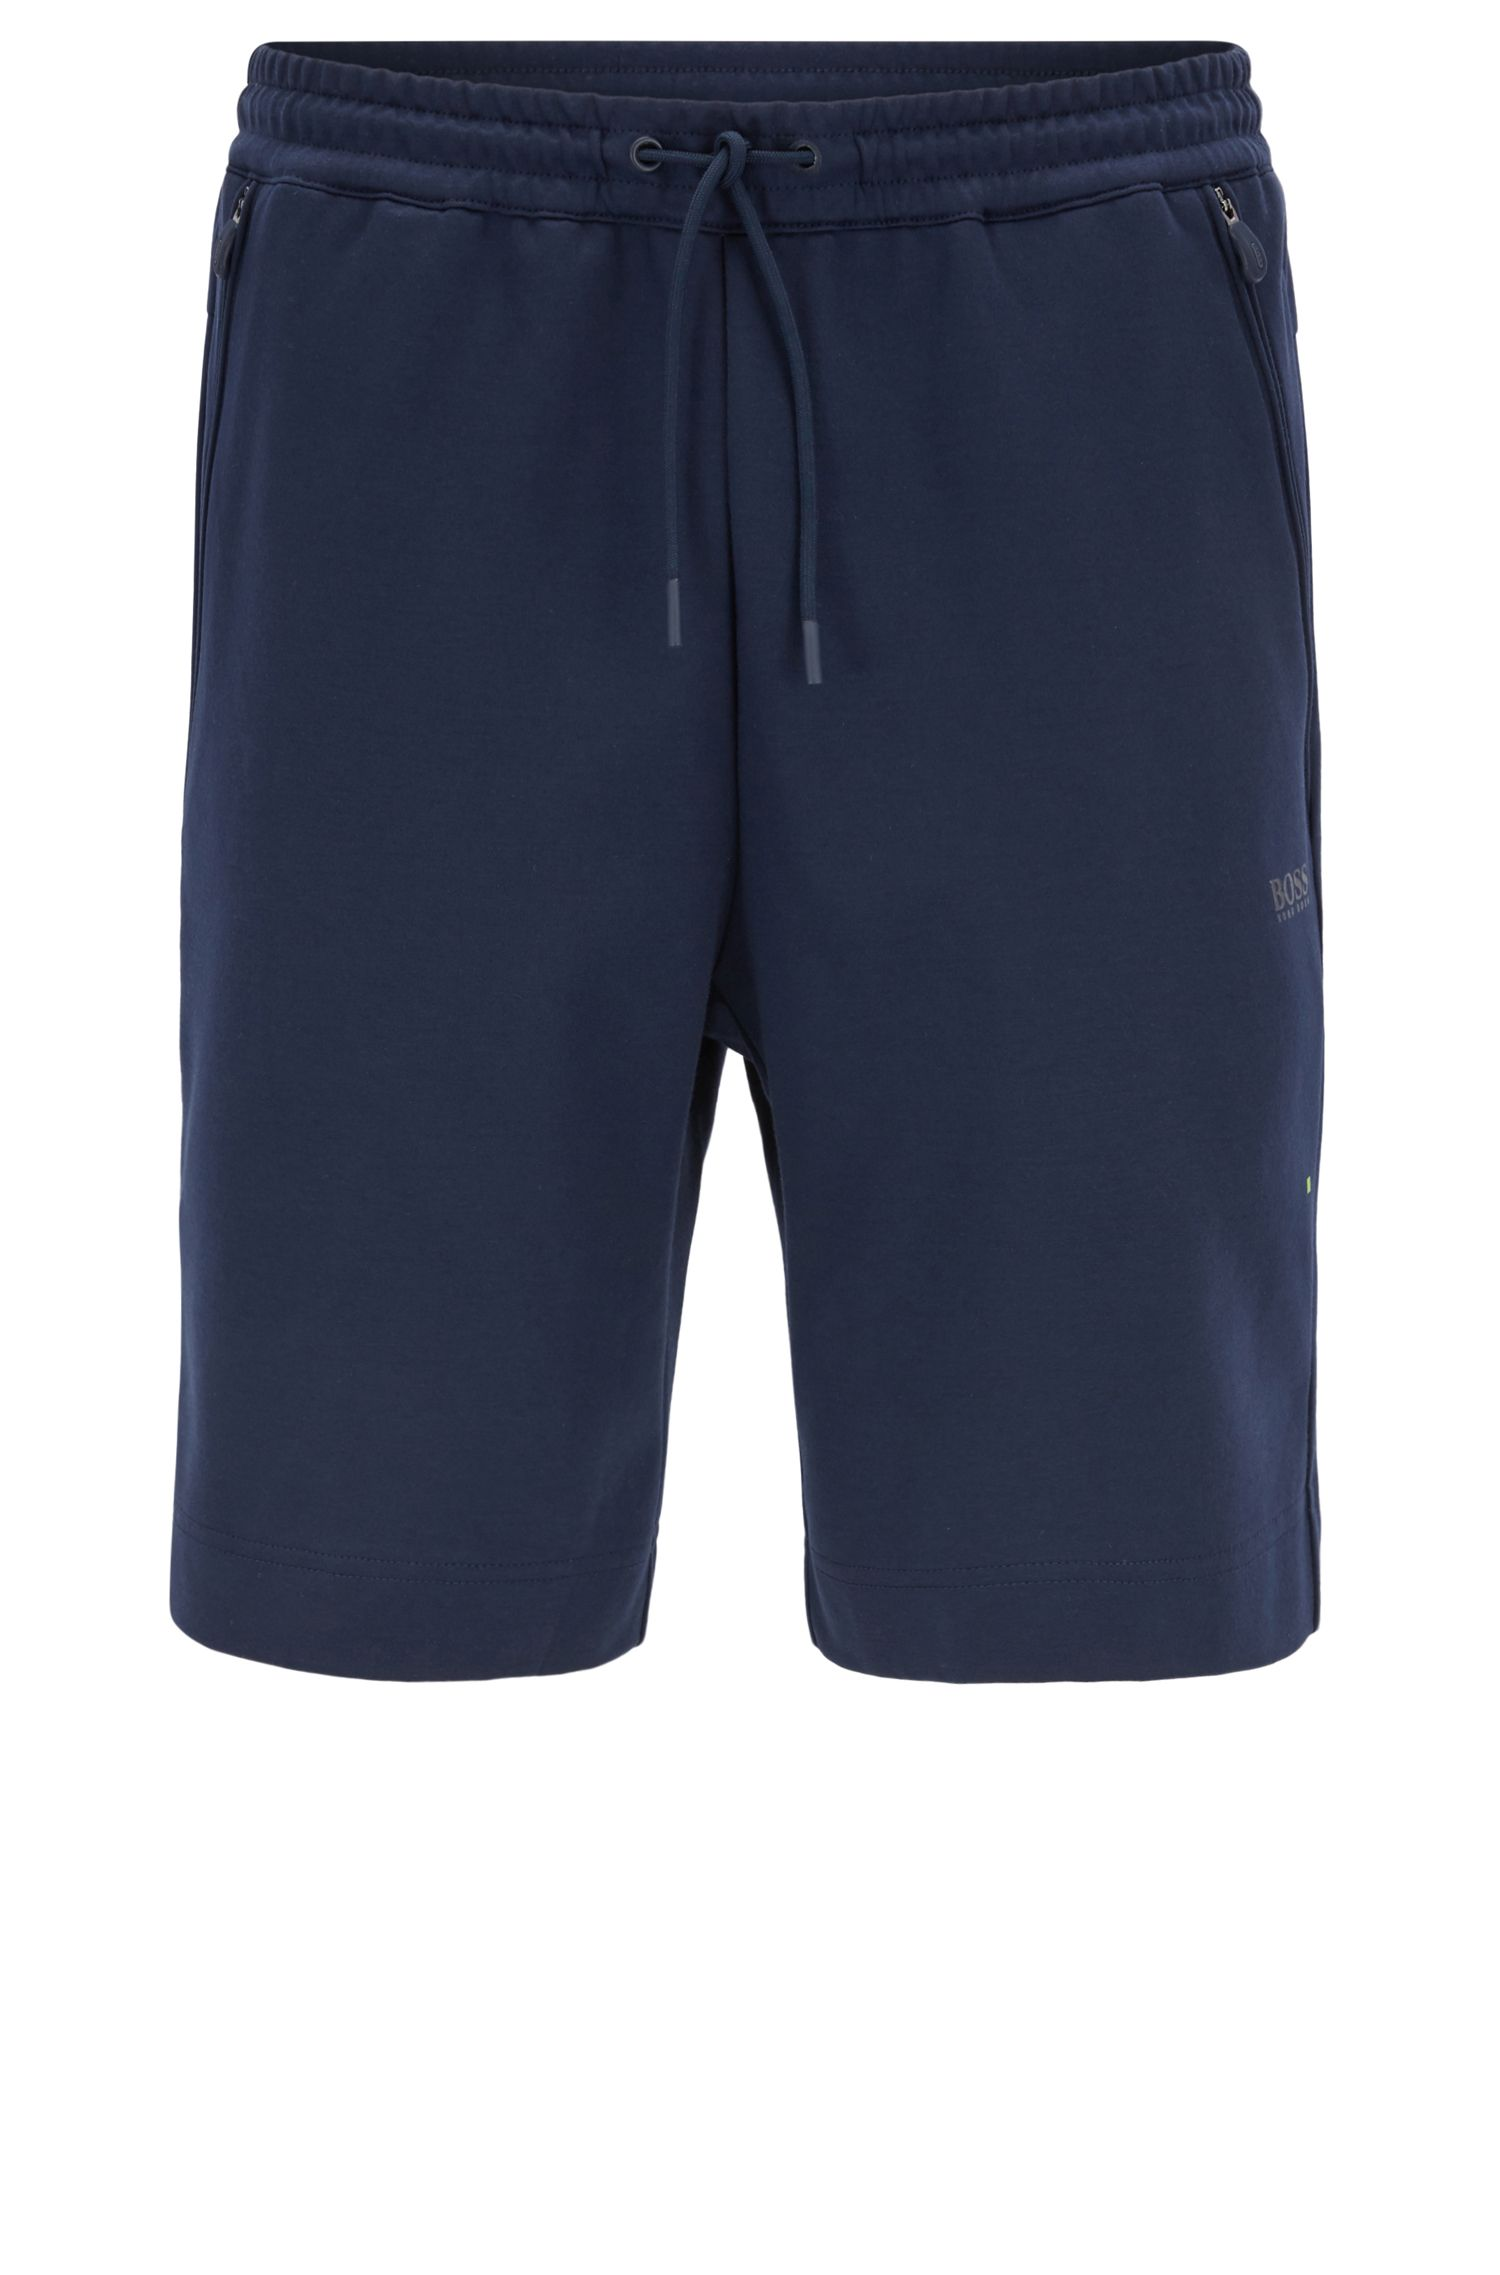 Waterbestendige slim-fit short van een katoenmix